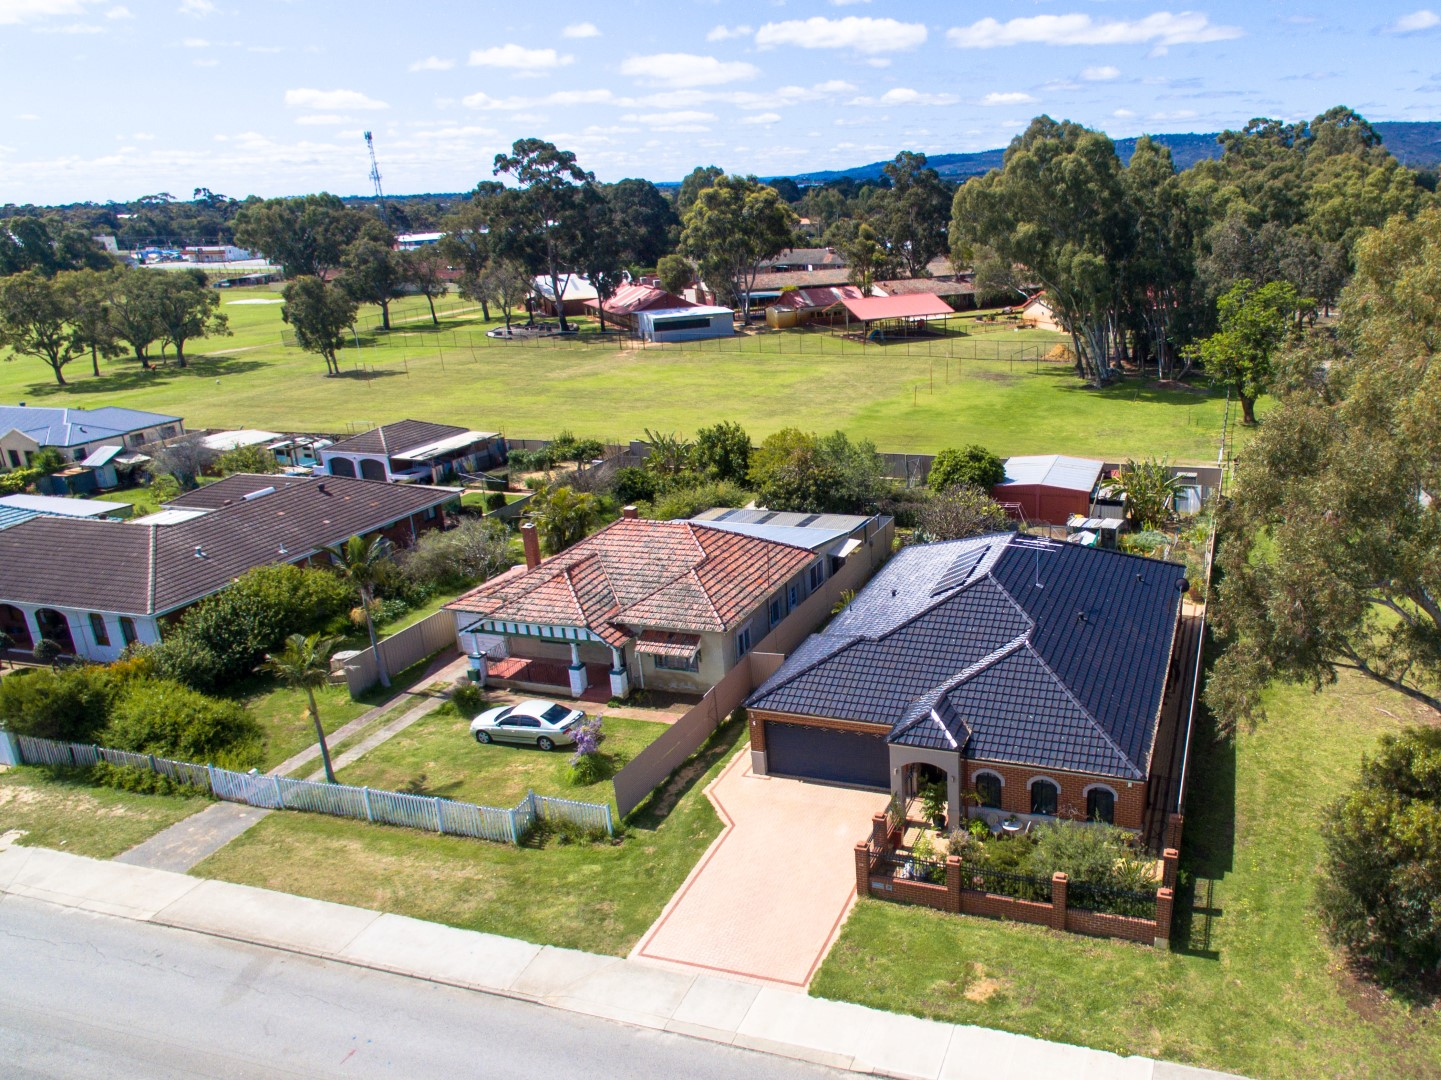 Property for sale in MADDINGTON, 132 Attfield Street : Attree Real Estate